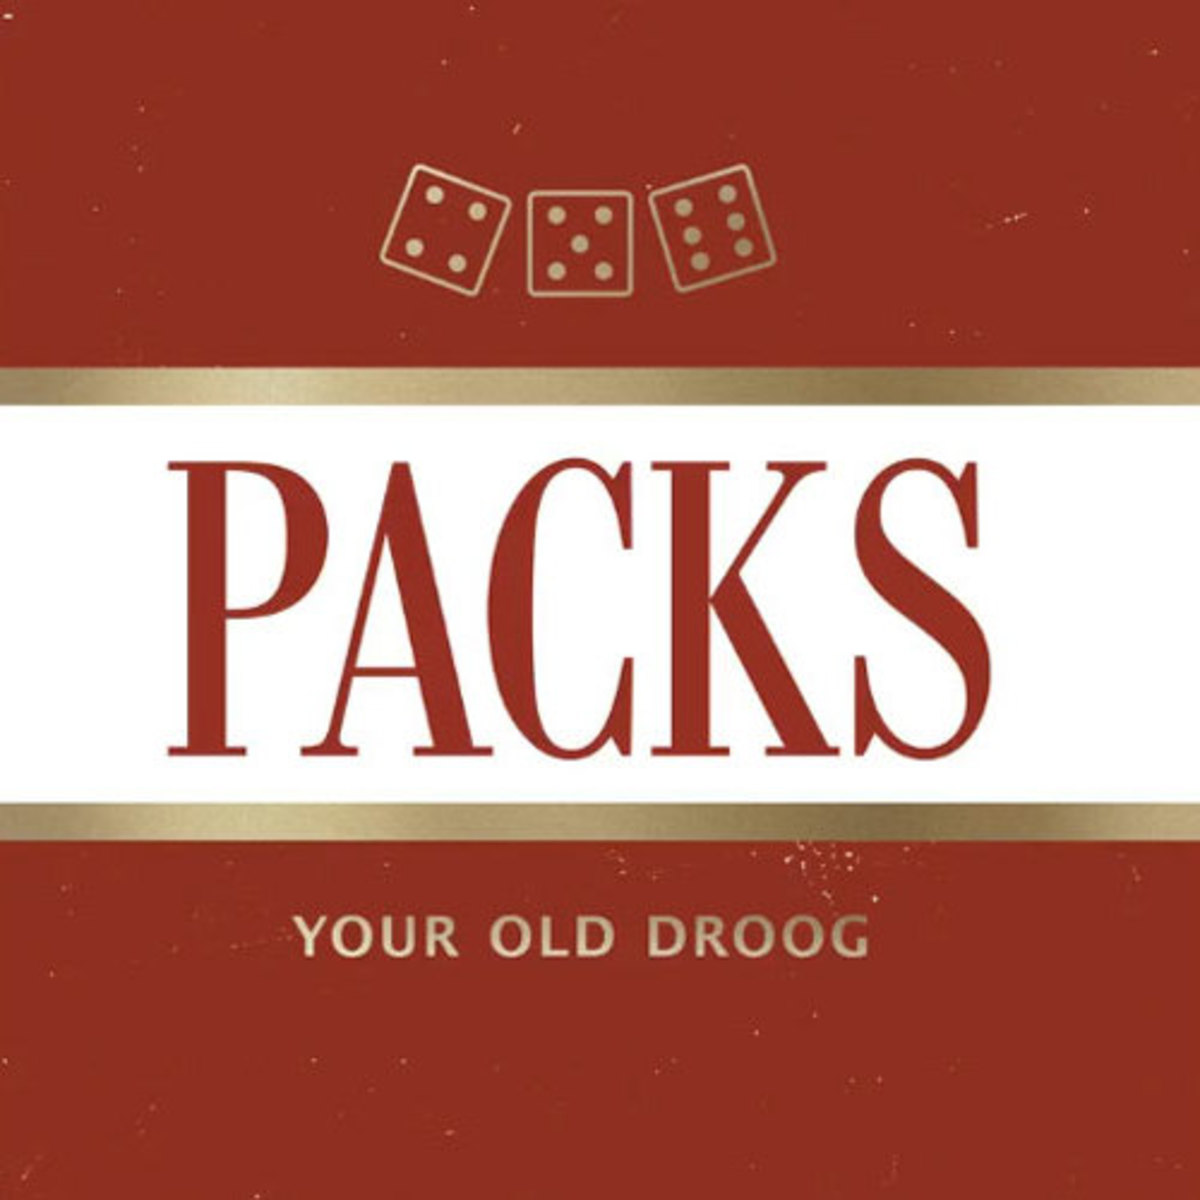 your-old-droog-packs.jpg